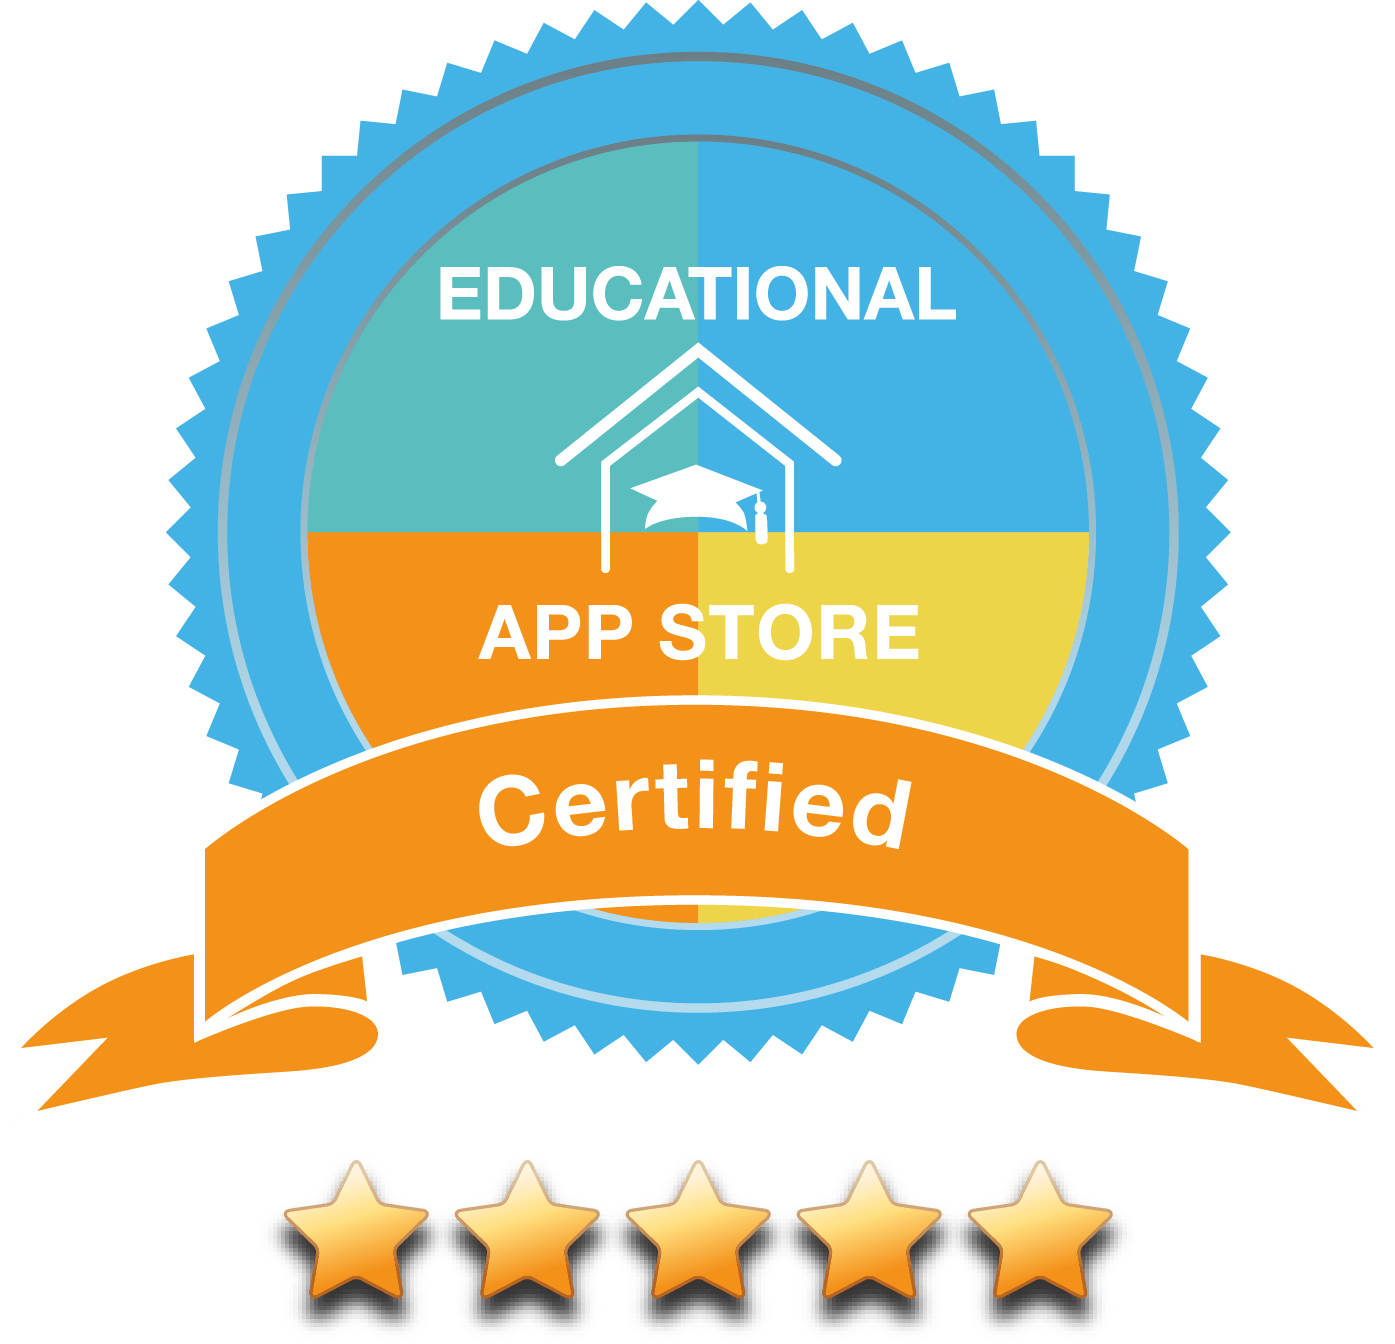 Makers Empire is Certified by the Educational App Store